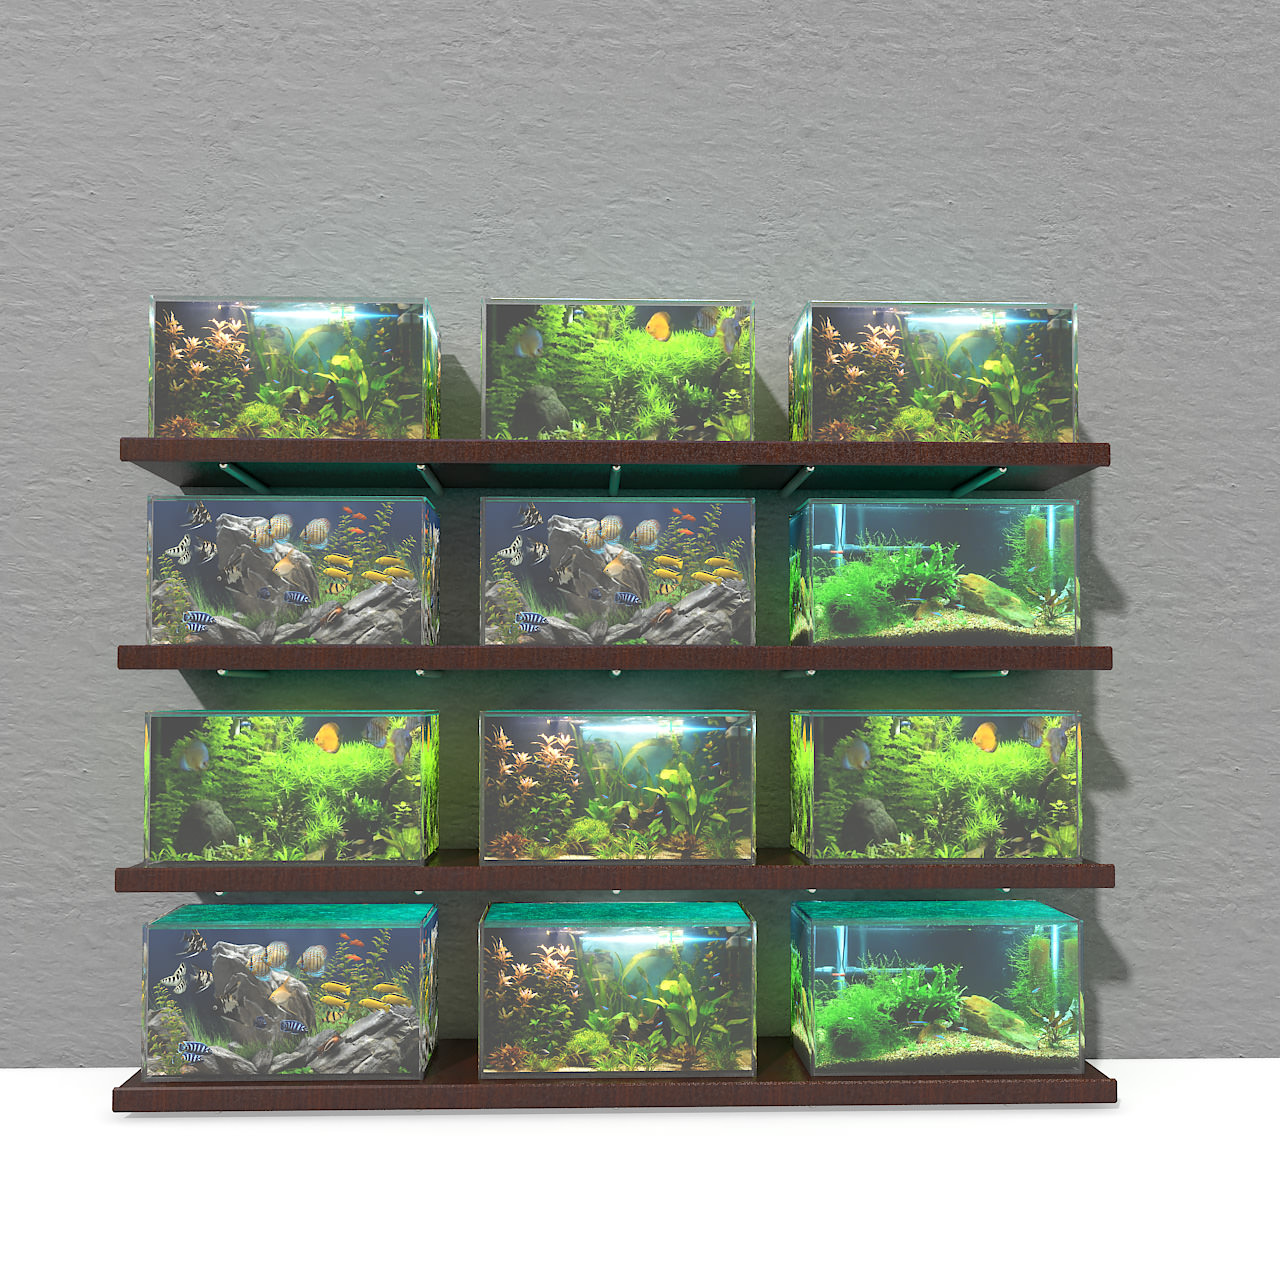 Model aquarium fish tanks aquariums textures joy for Fish tank net